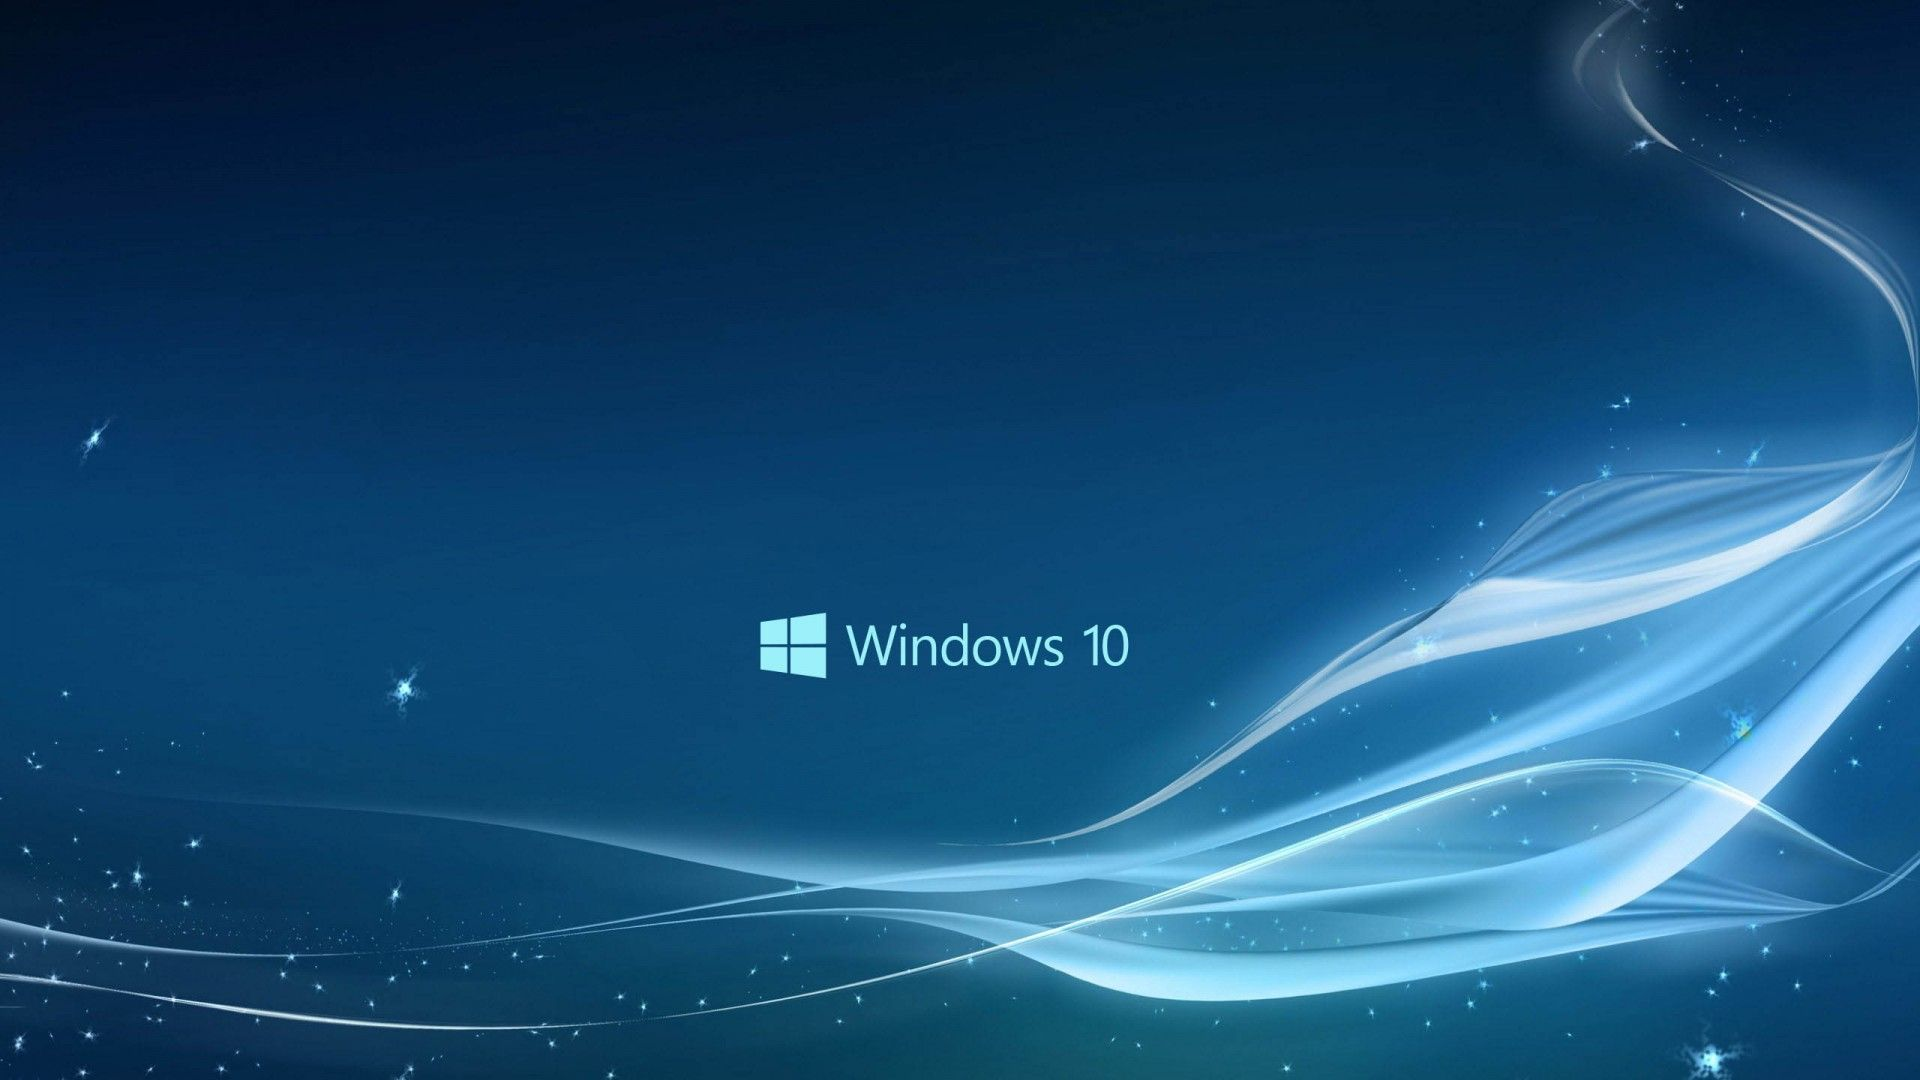 file attachment for new wallpaper windows 10 in hd quality - free